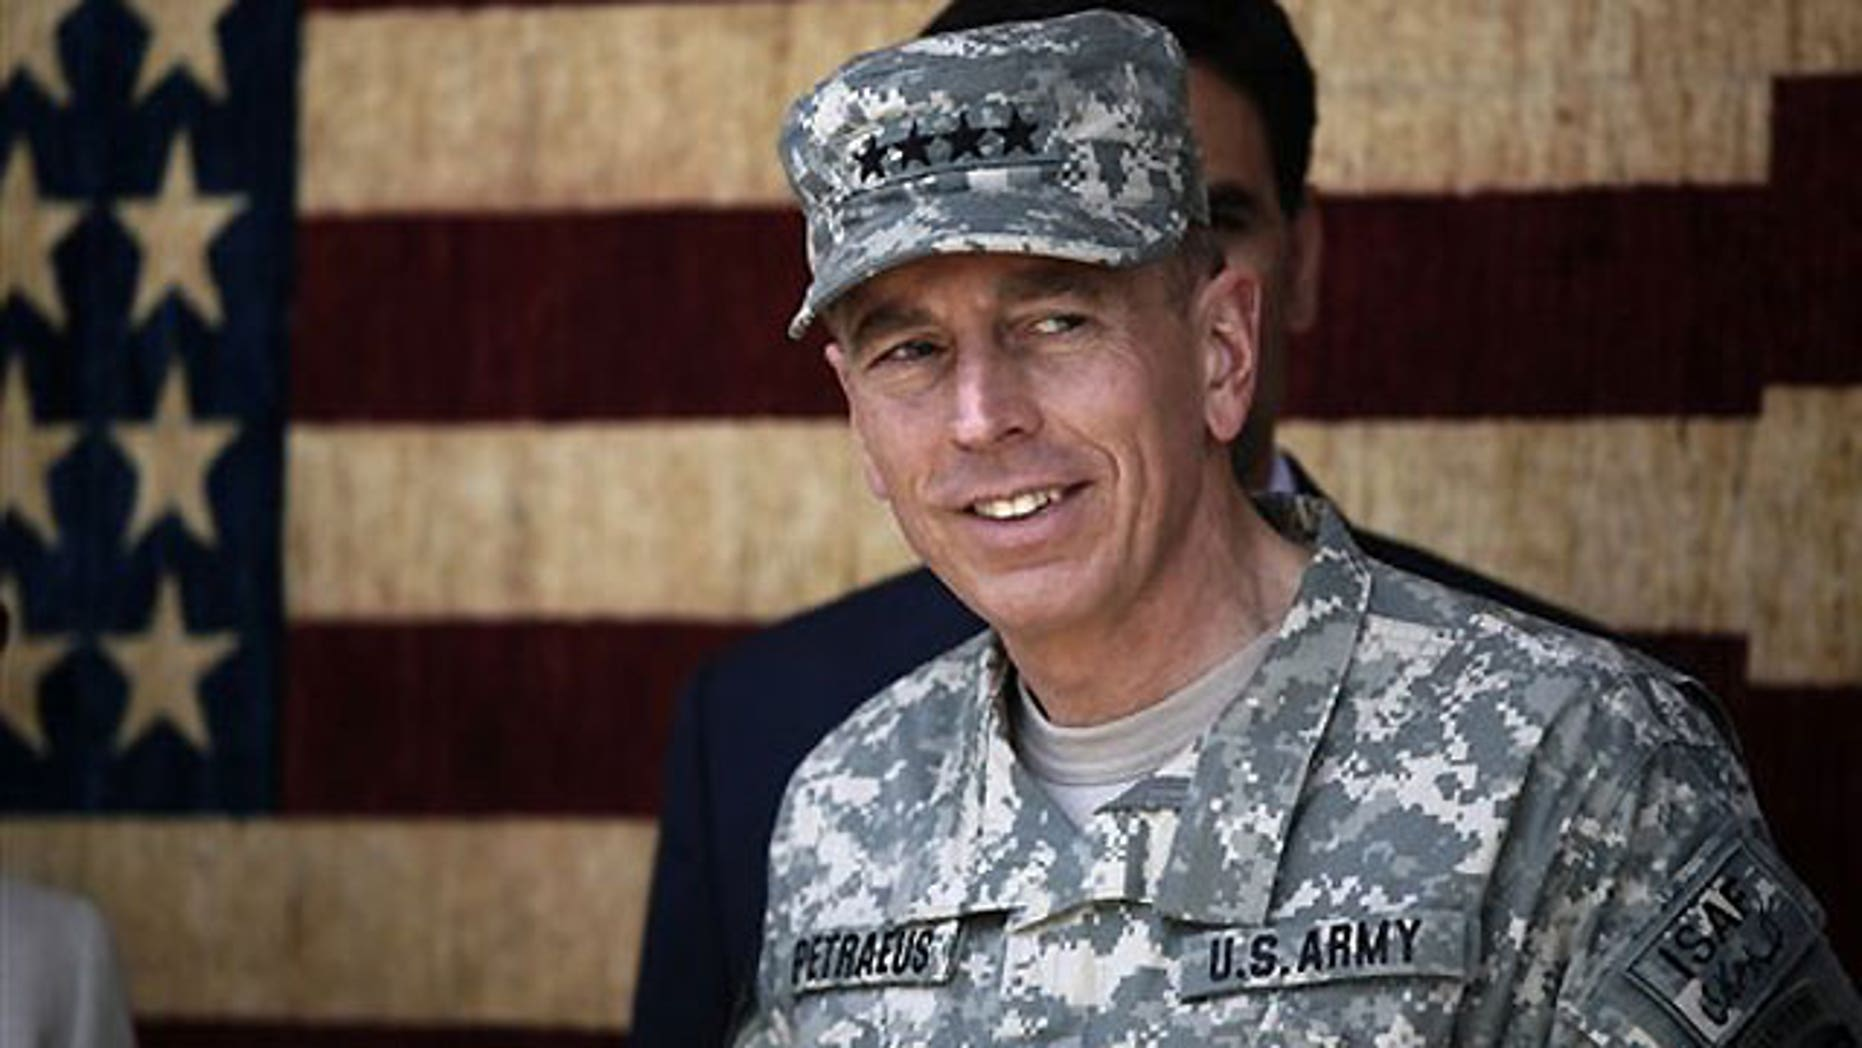 July 3: Gen. David Petraeus, the new commander of U.S. and NATO forces in Afghanistan, looks on during the Independence Day celebrations in Kabul, Afghanistan.